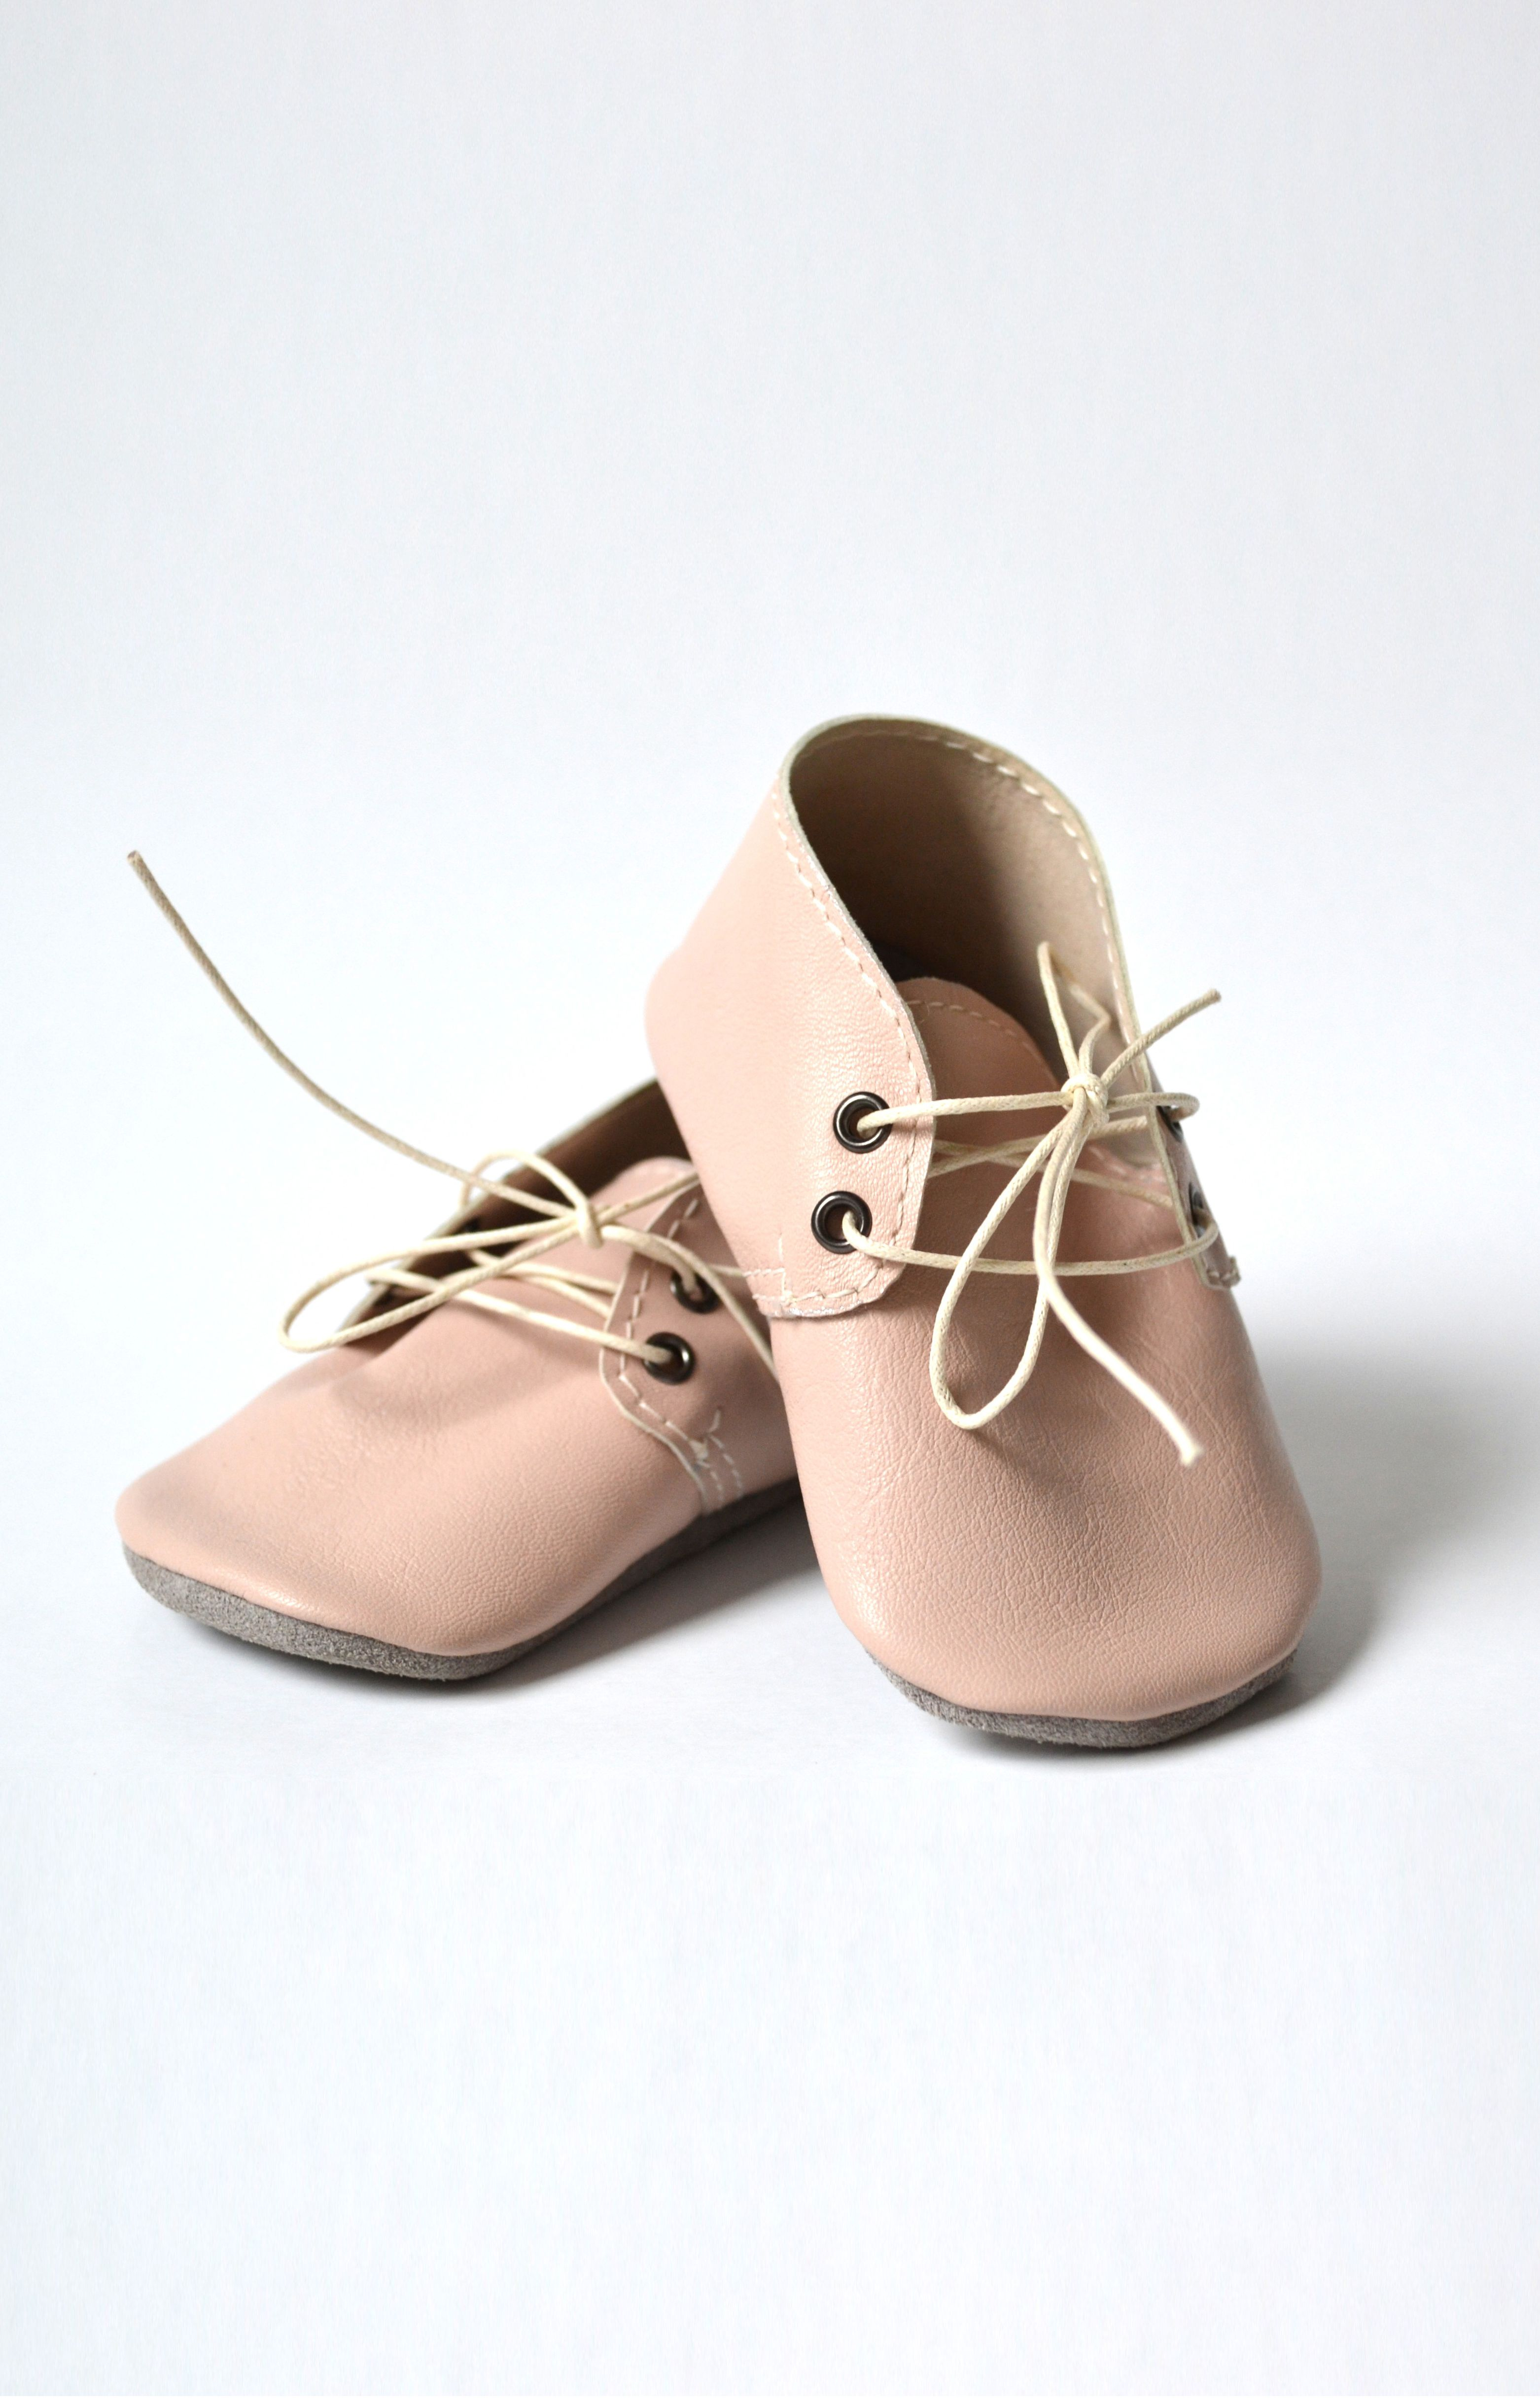 Handmade soft sole leather baby shoes Baby girl oxford shoes